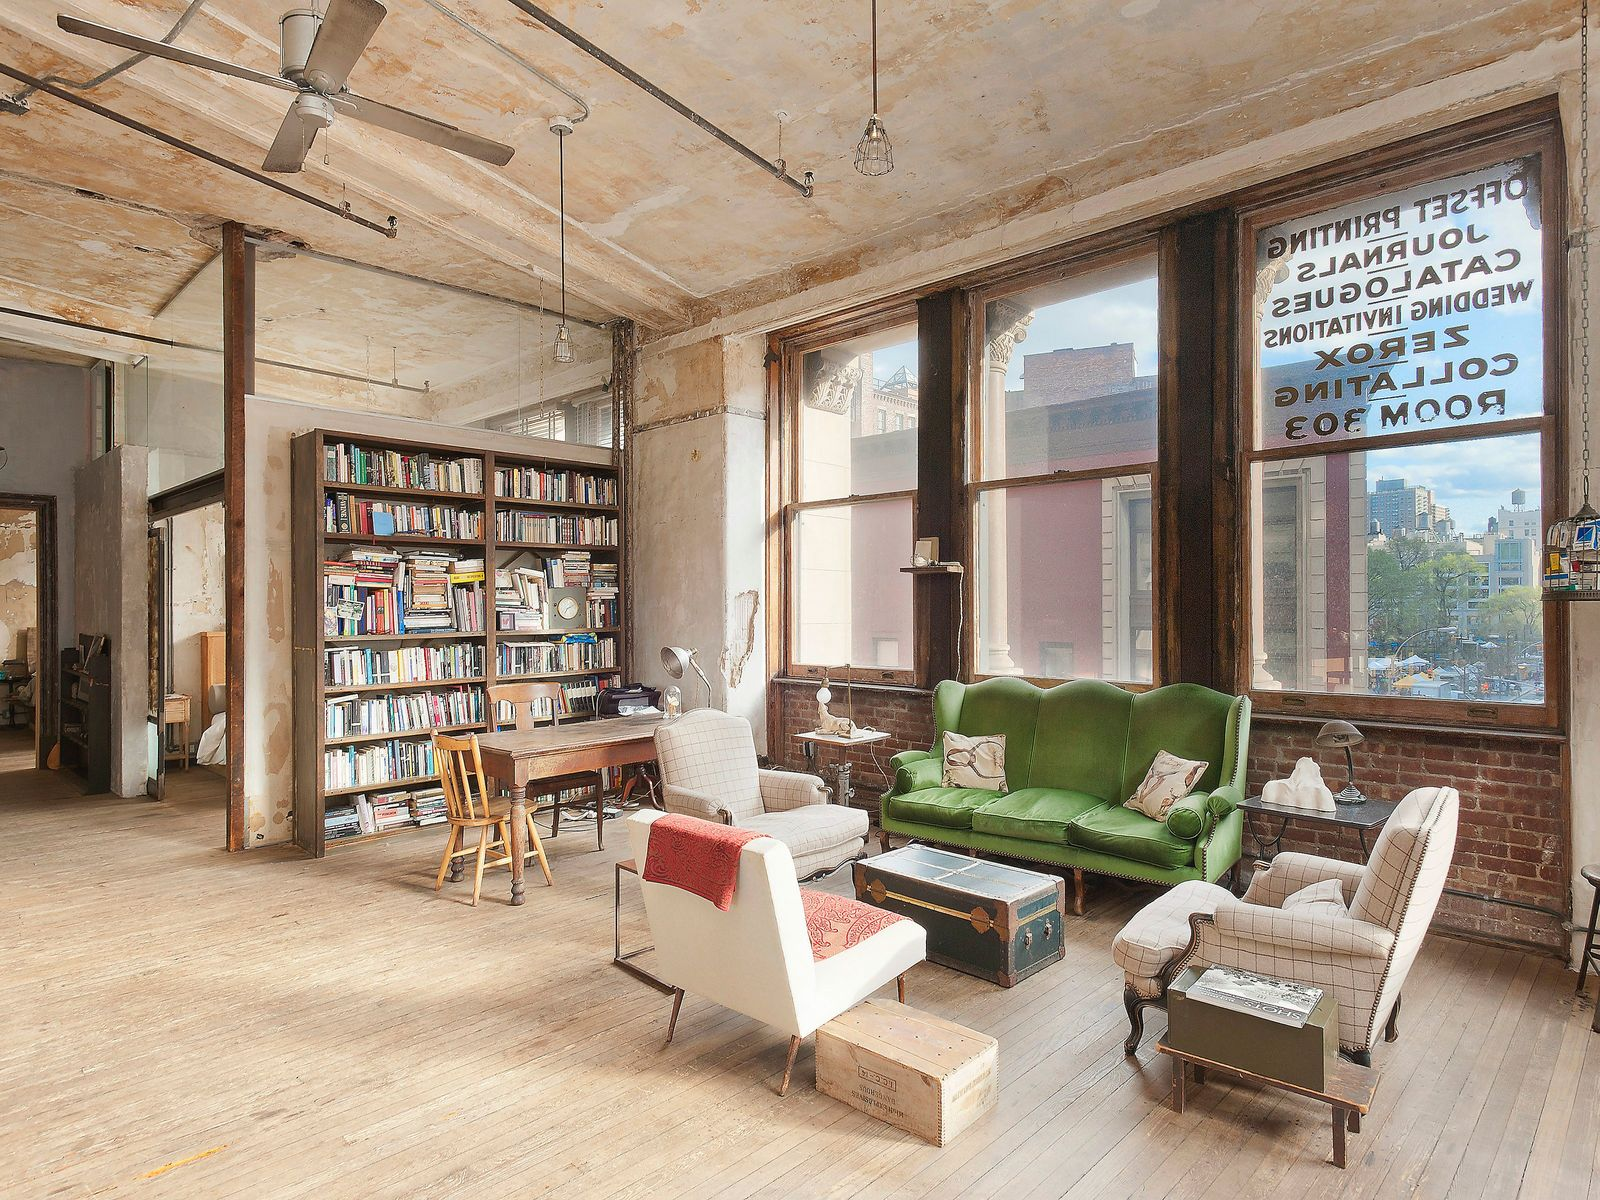 Bohemian Rhapsody, New York NY Cooperative - New York City Real Estate